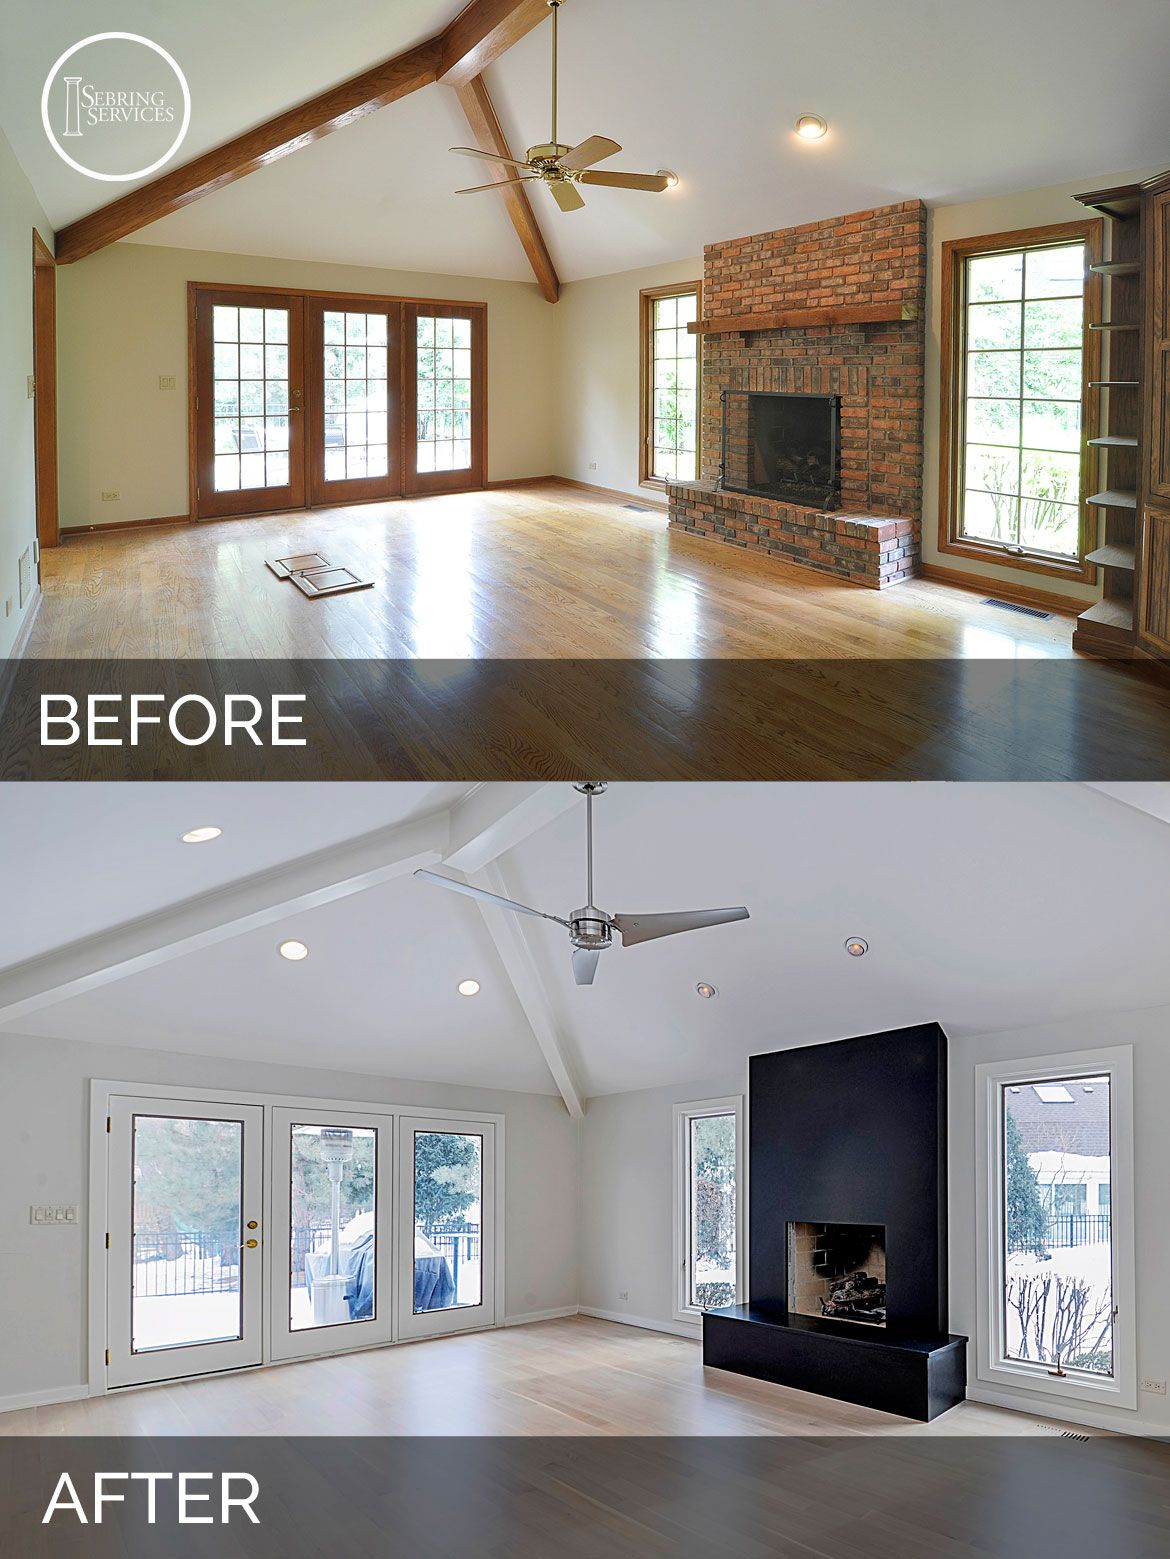 Before and after kitchen remodeling sebring services for Kitchen remodel before after